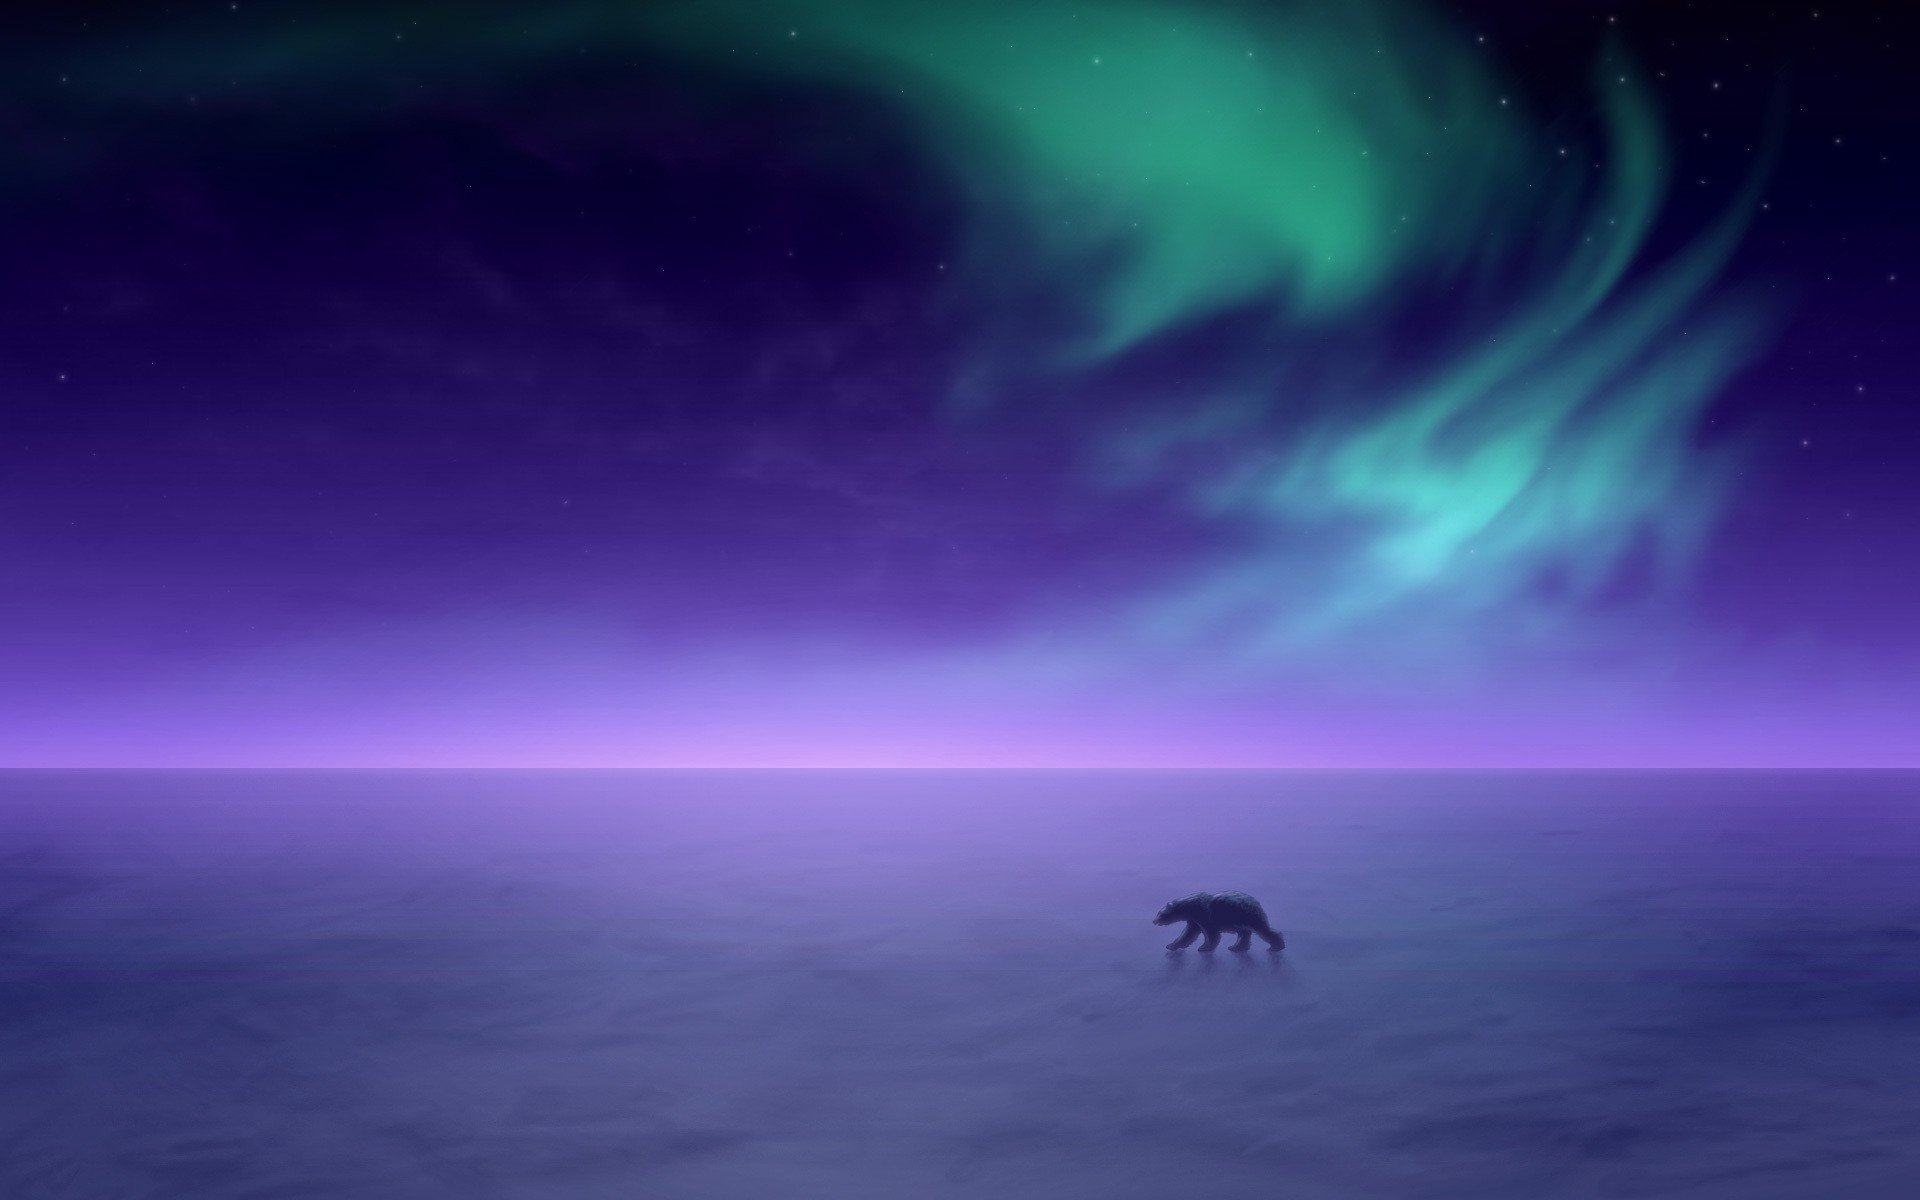 aurora borealis Alaska snow landscapes polar bears wallpaper 1920x1200